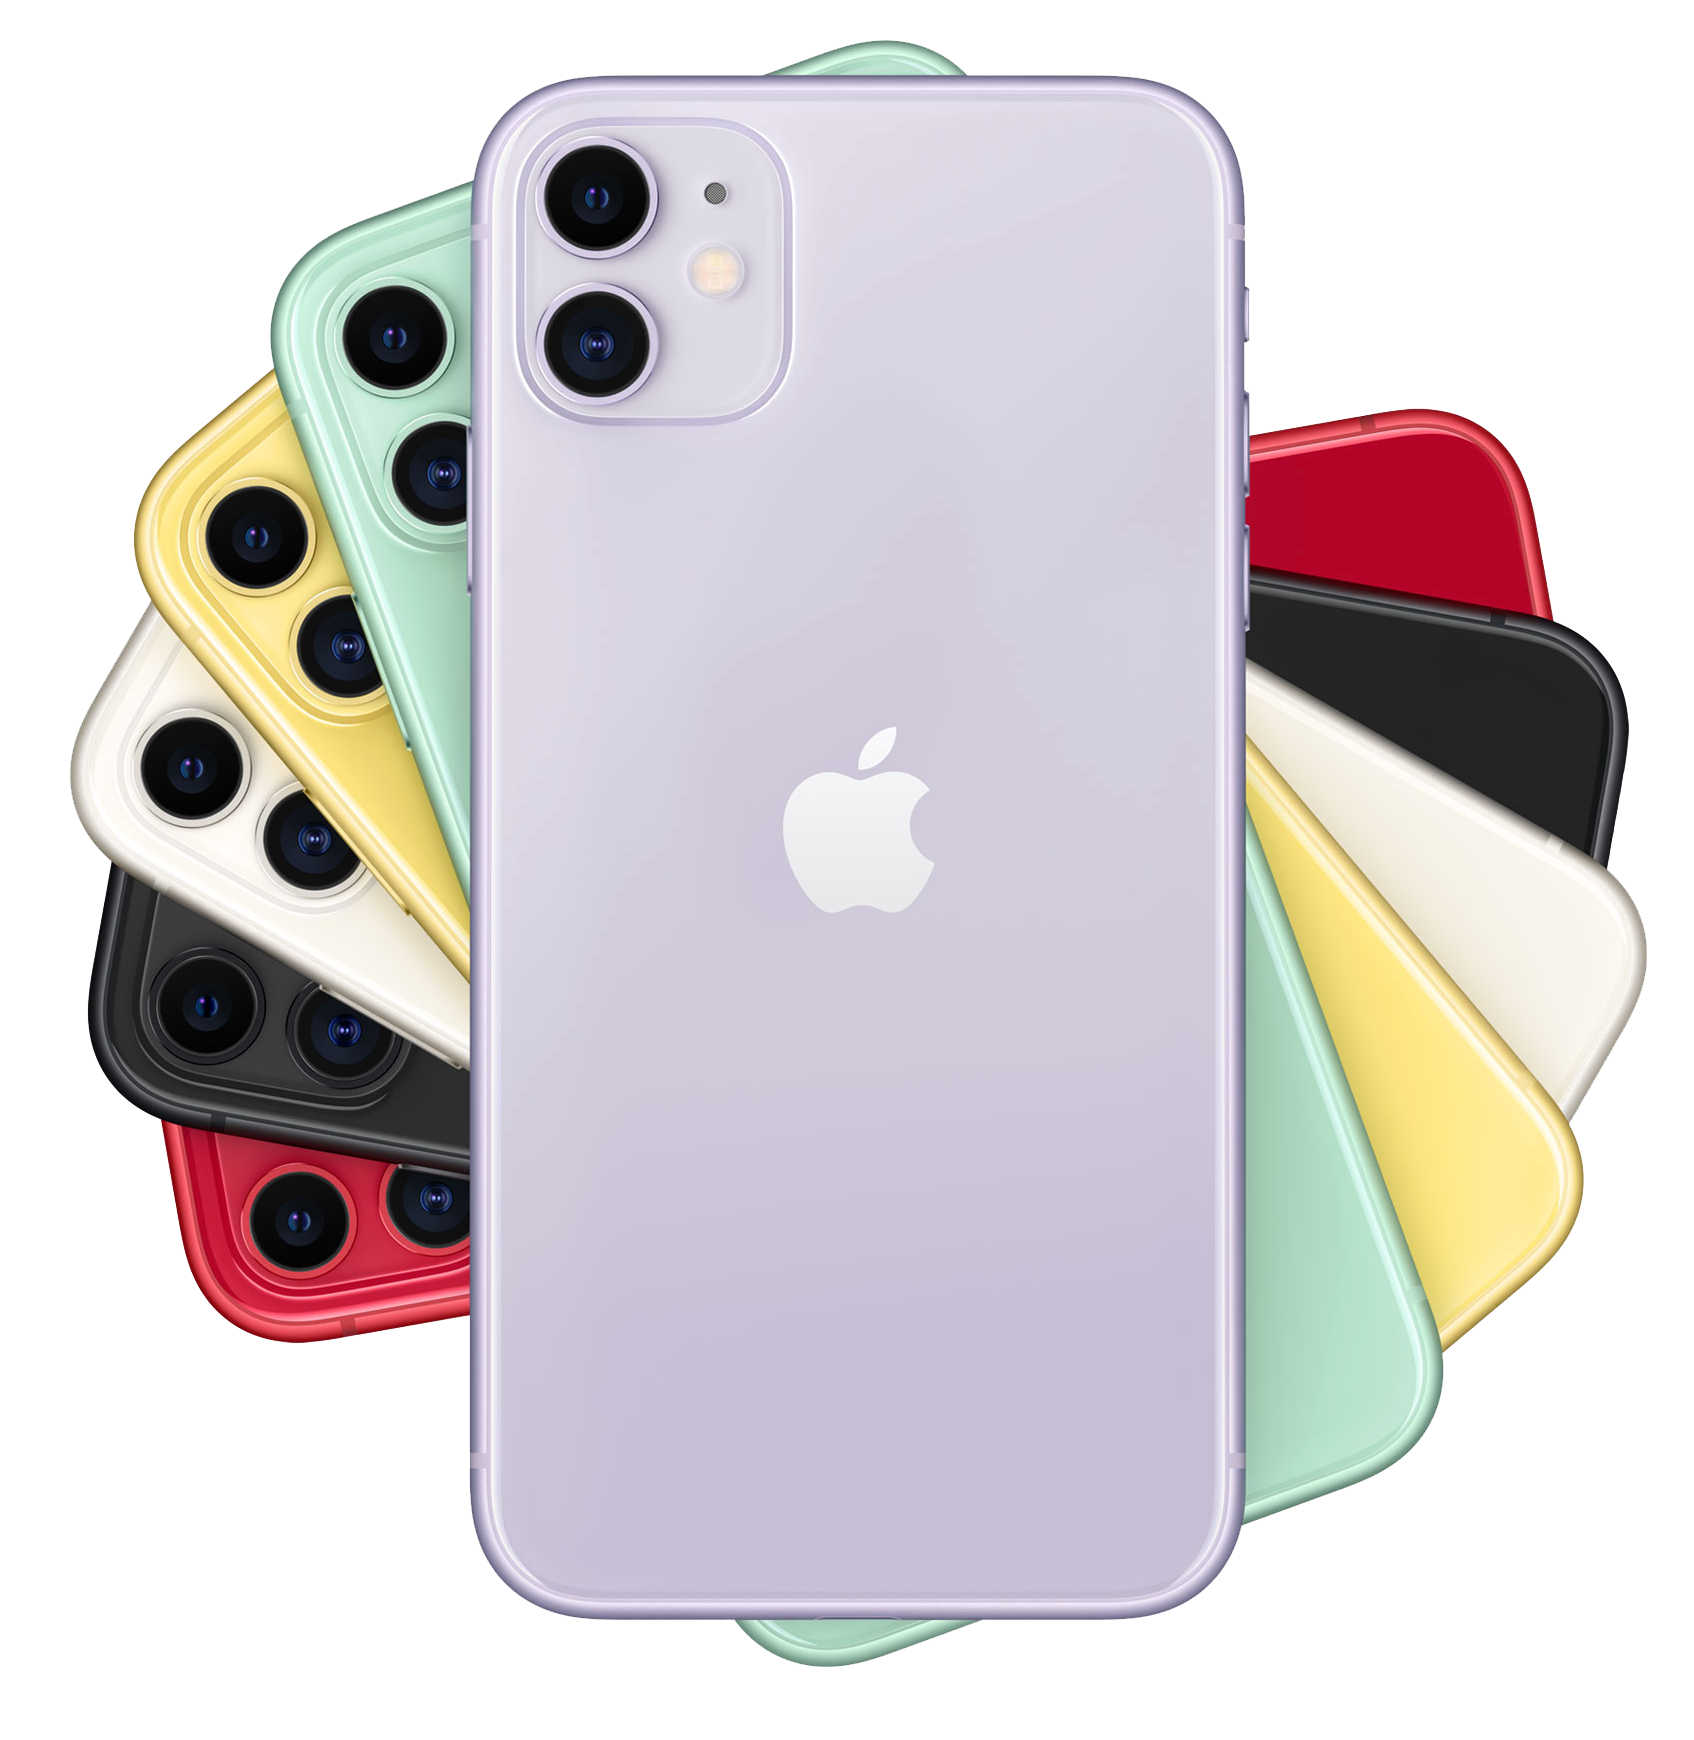 Stack of fanned iPhone 11 devices. From top to bottom: Purple, Green, Yellow, White, Black, Red.